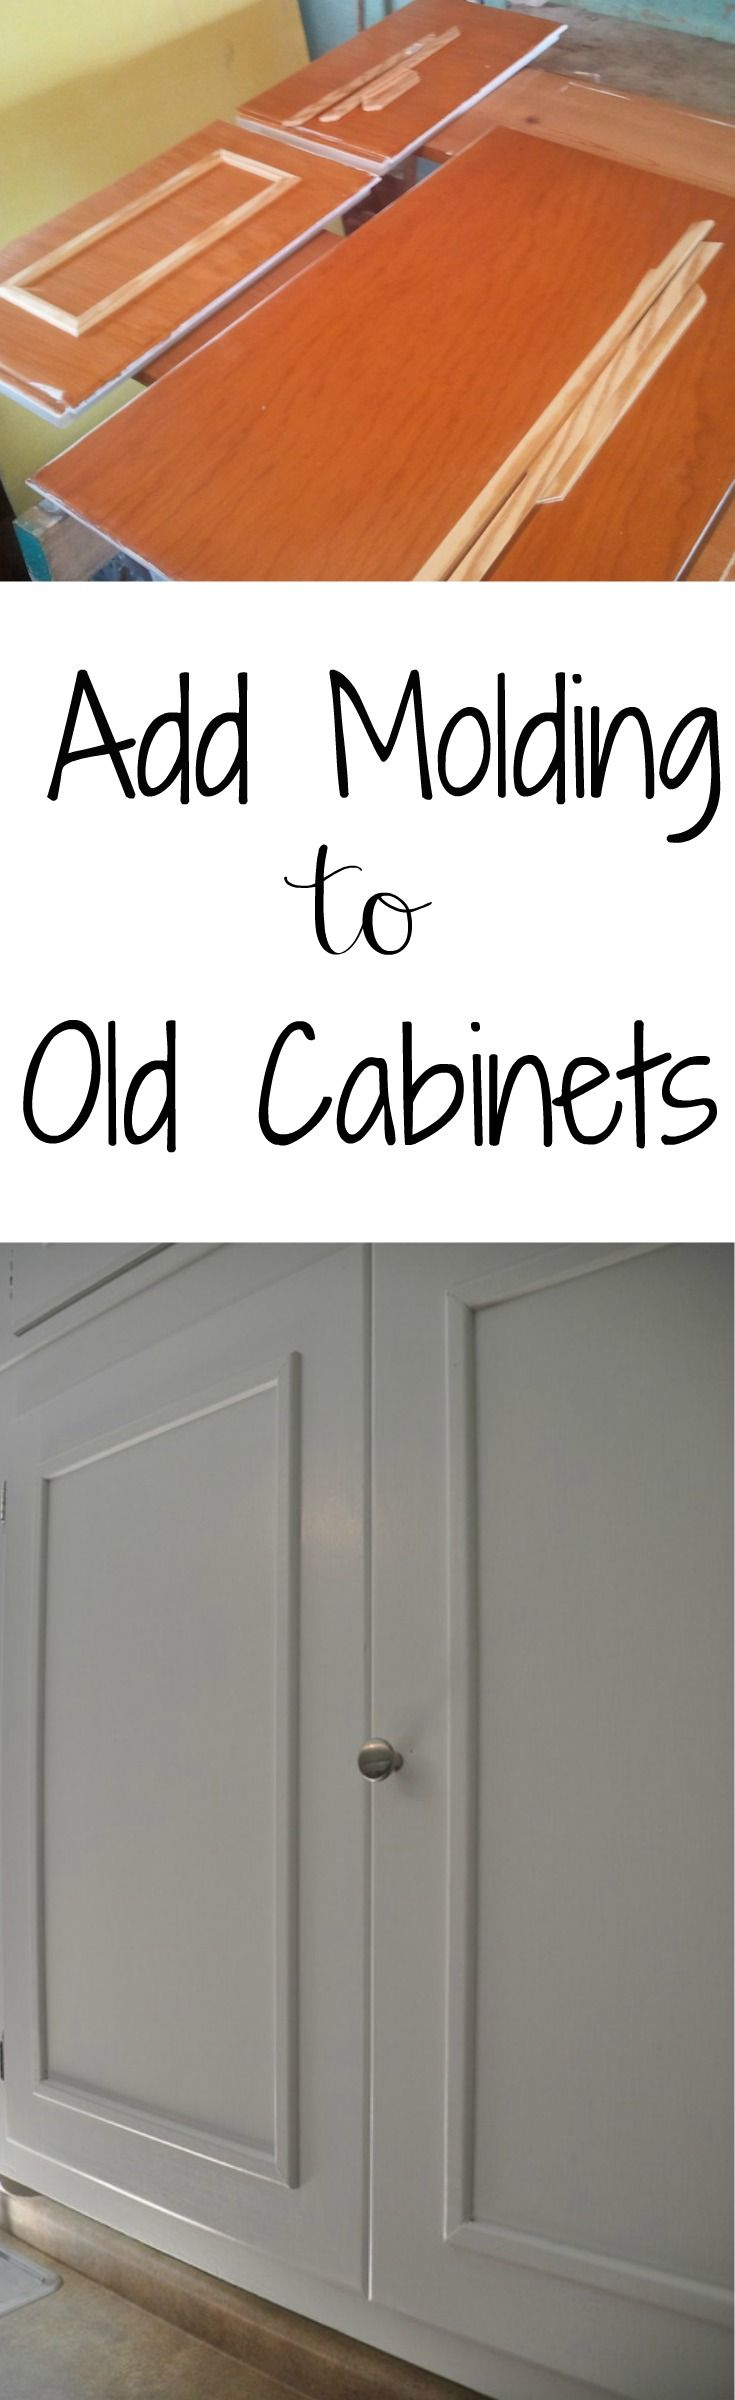 Add Molding to Old Cabinets. Great way to update old cabinets!